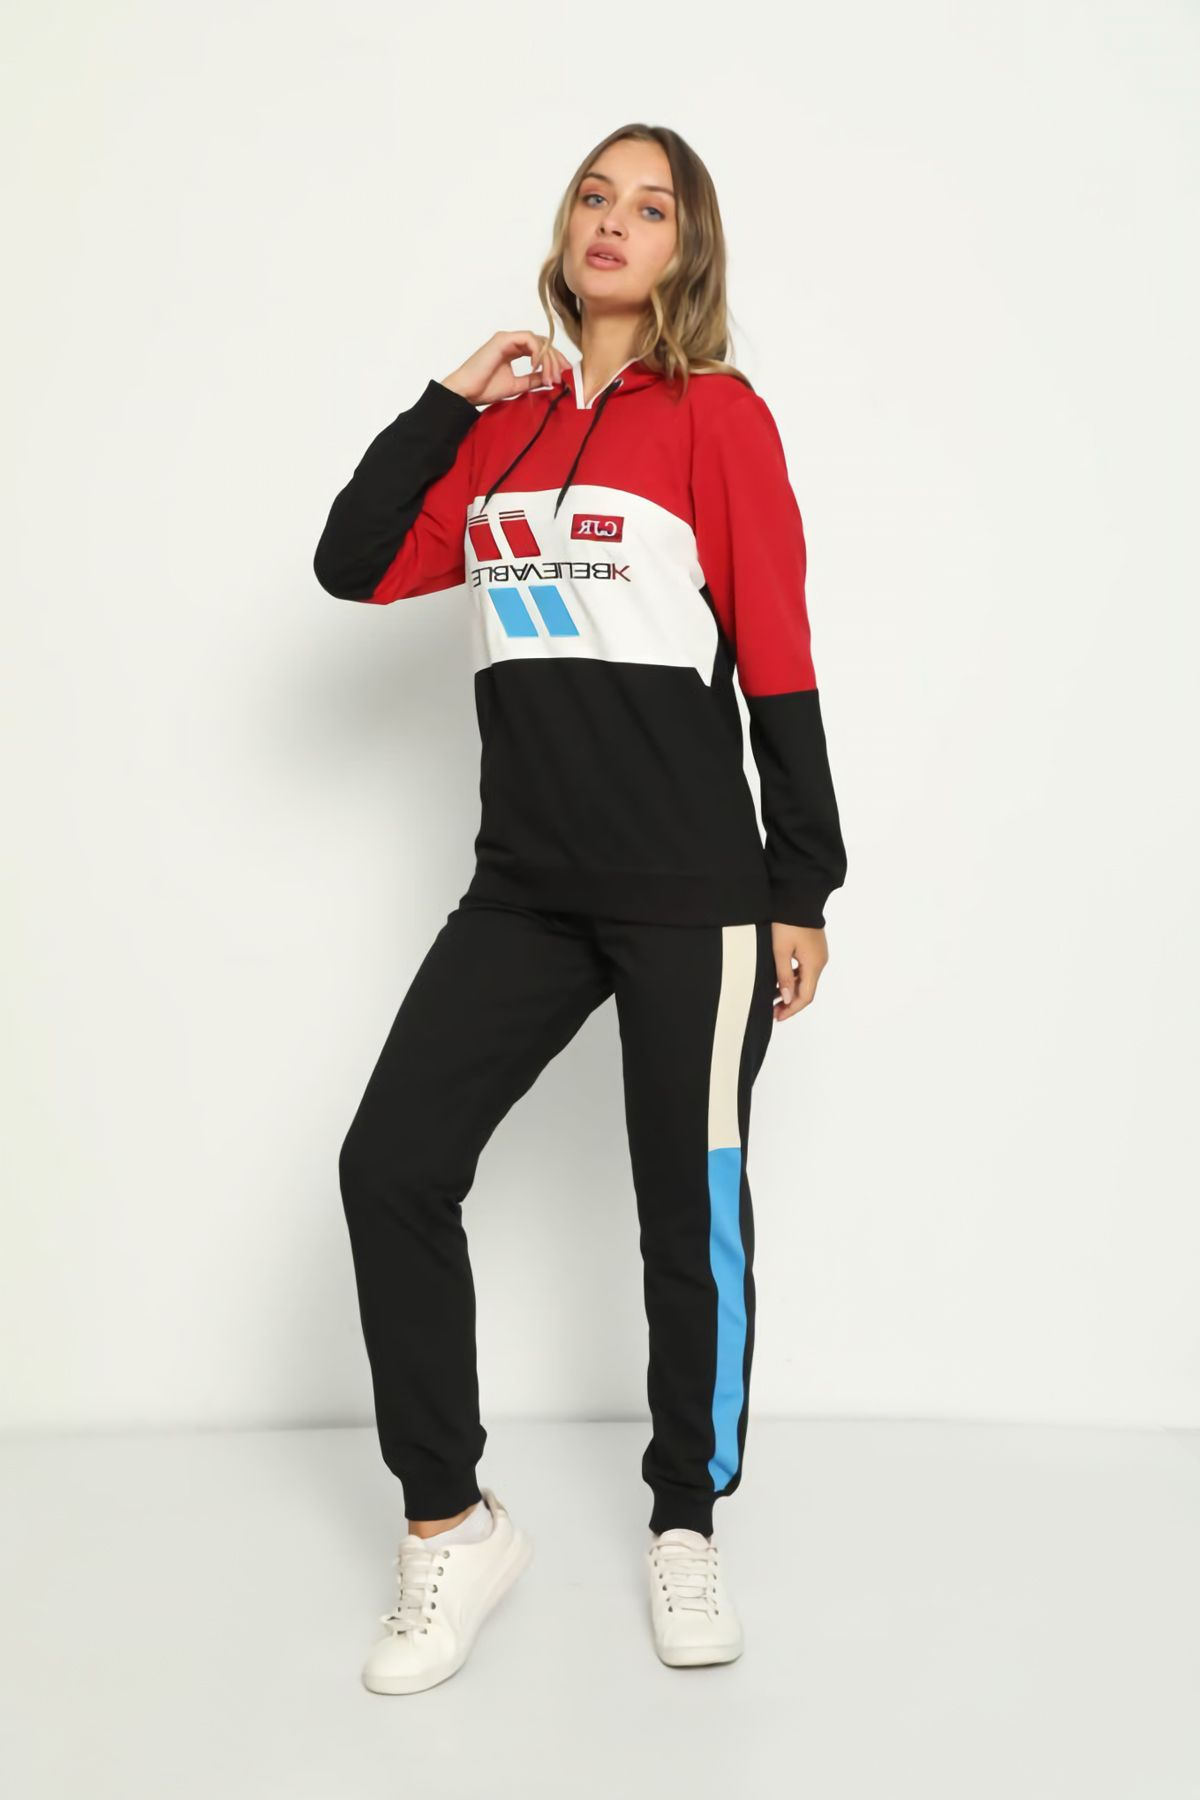 Women's Embroidery Detailed Hooded Tracksuit Set 3040 Red